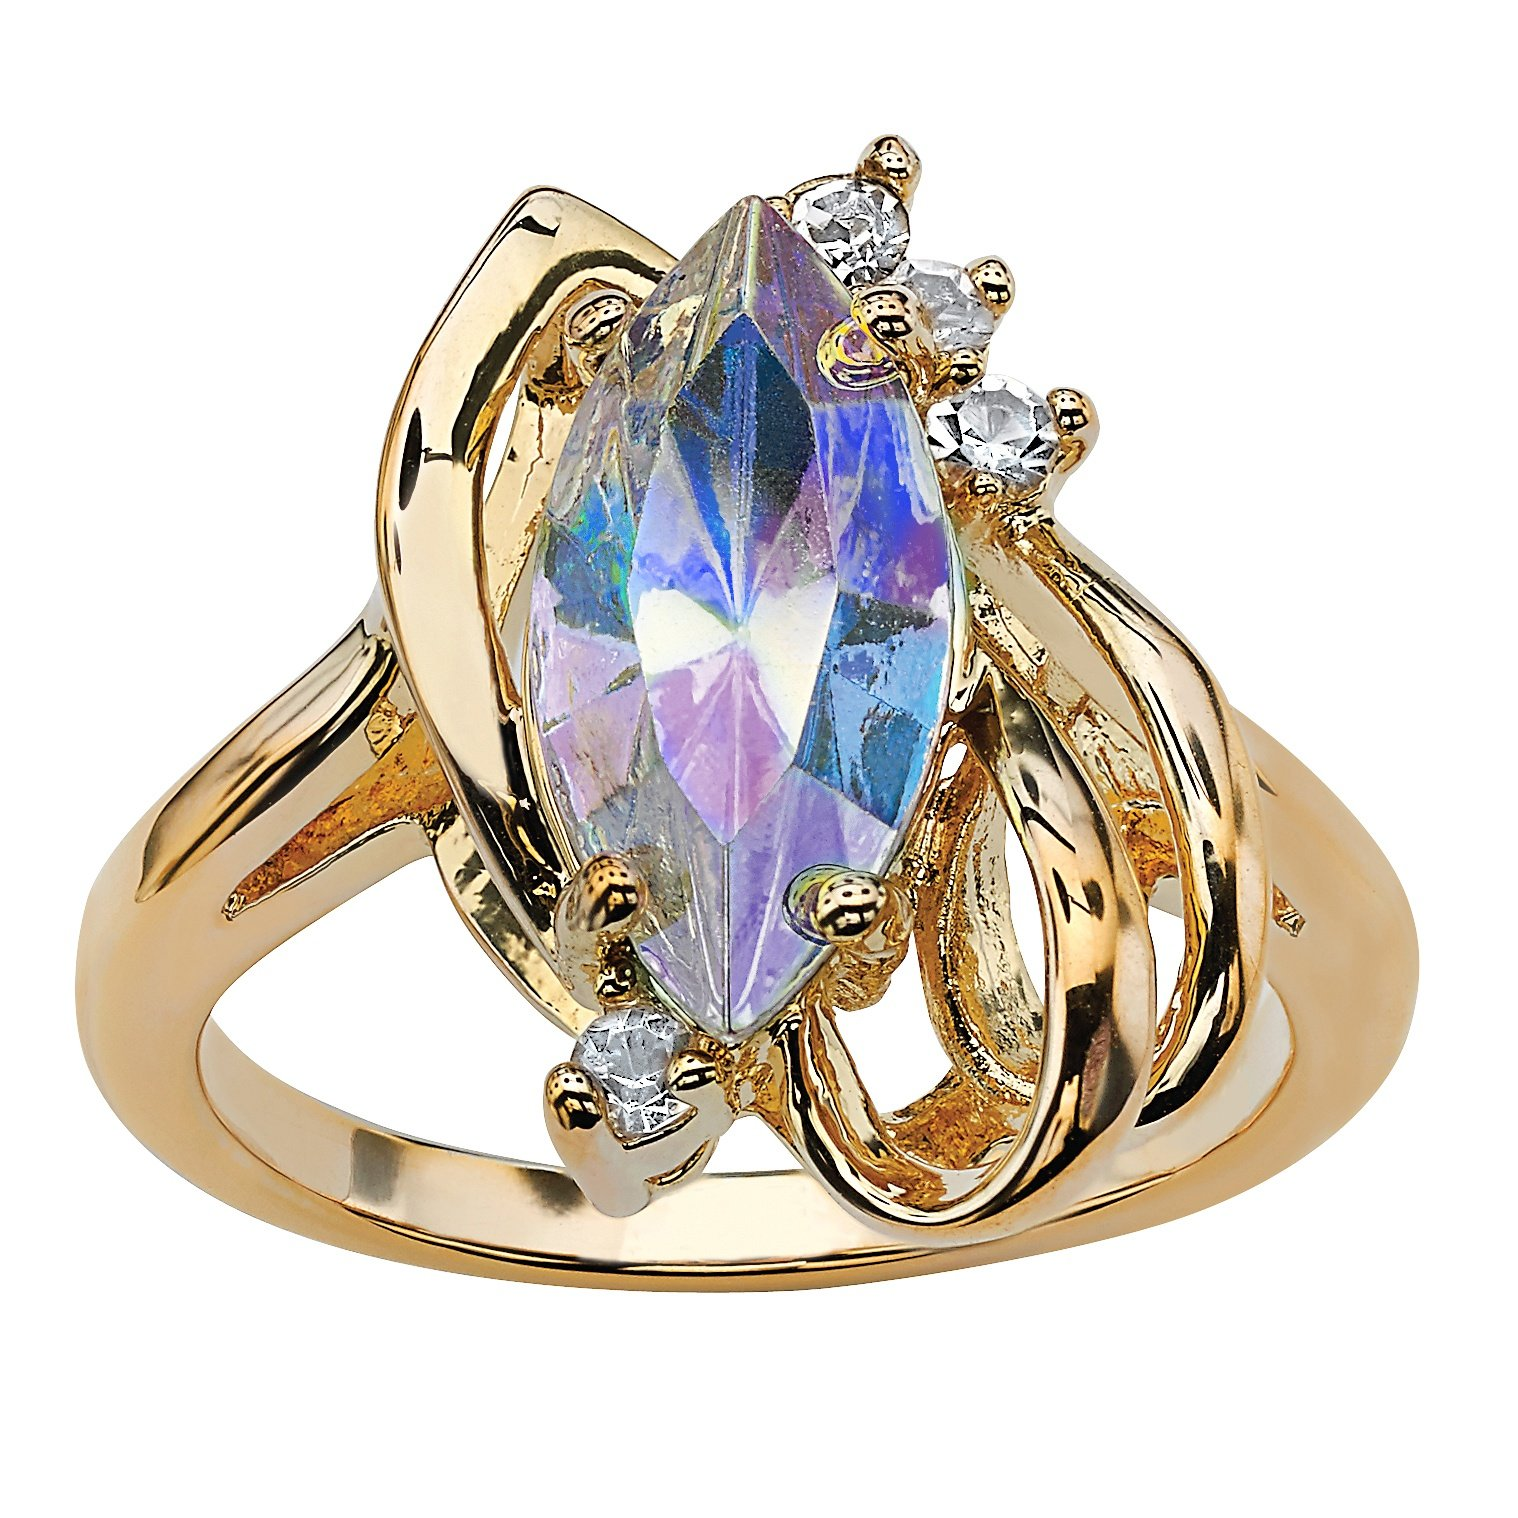 Palm Beach Jewelry 14K Yellow Gold-Plated Marquise Cut Aurora Borealis Crystal Ring Size 10